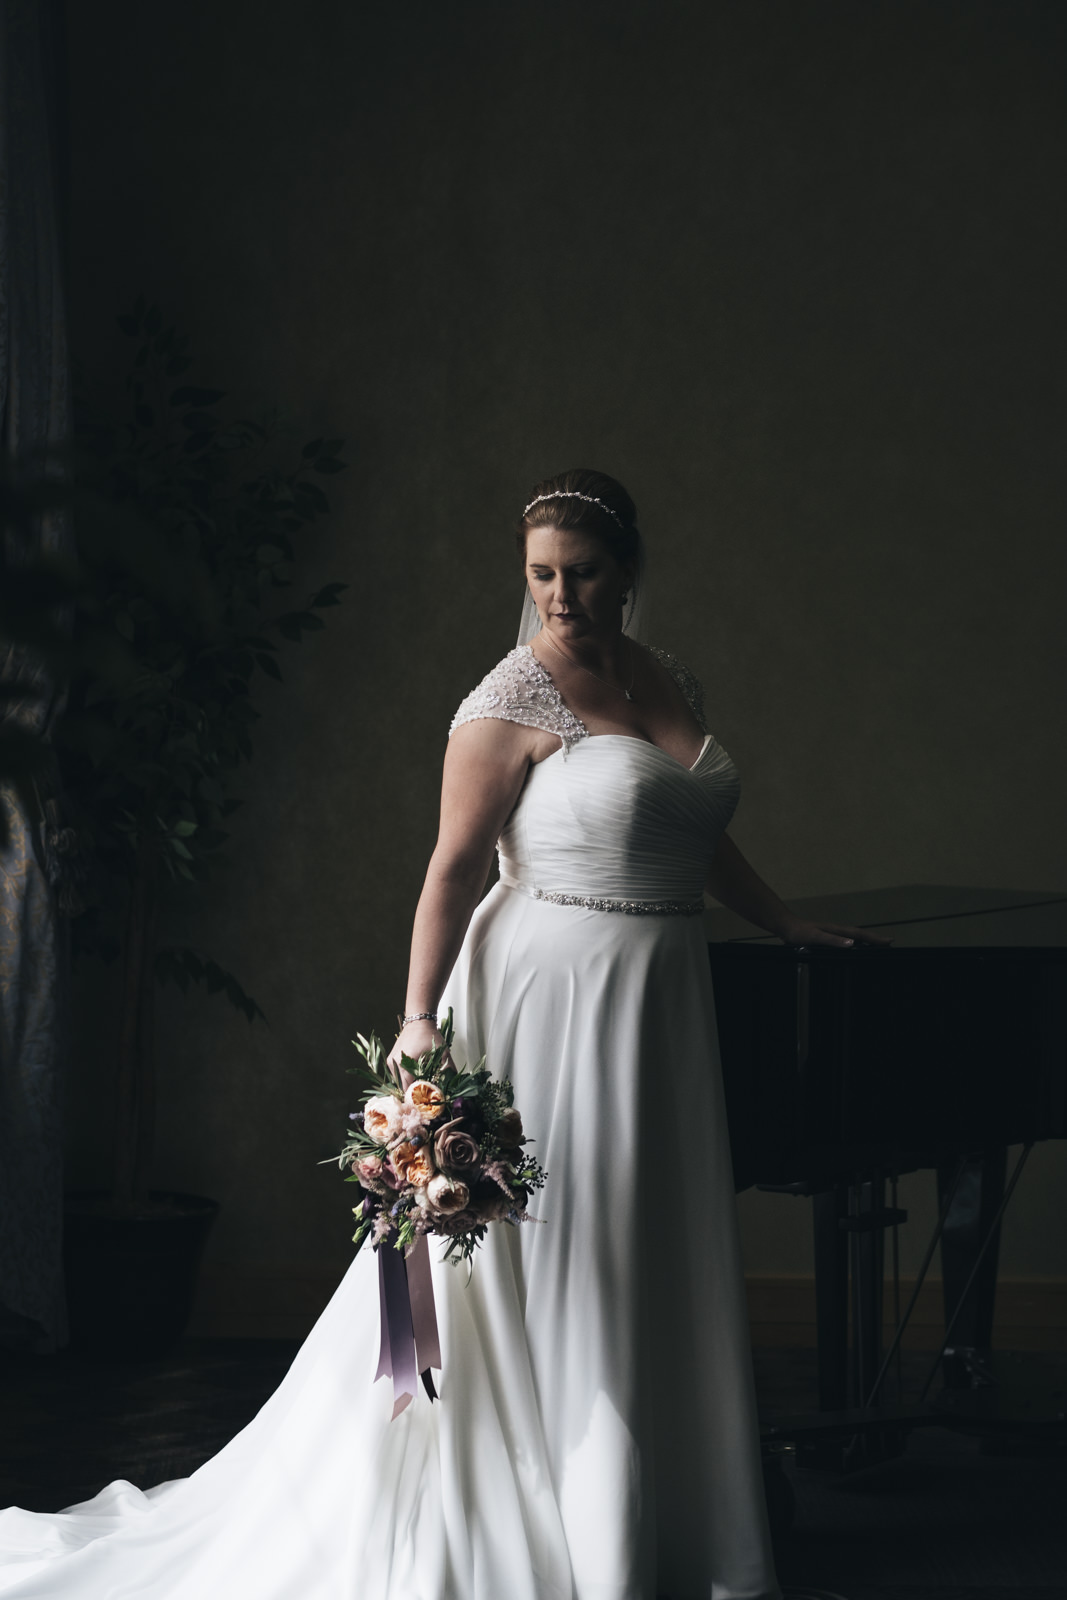 Stunning bride in a dress from Belle Amour Bridal.